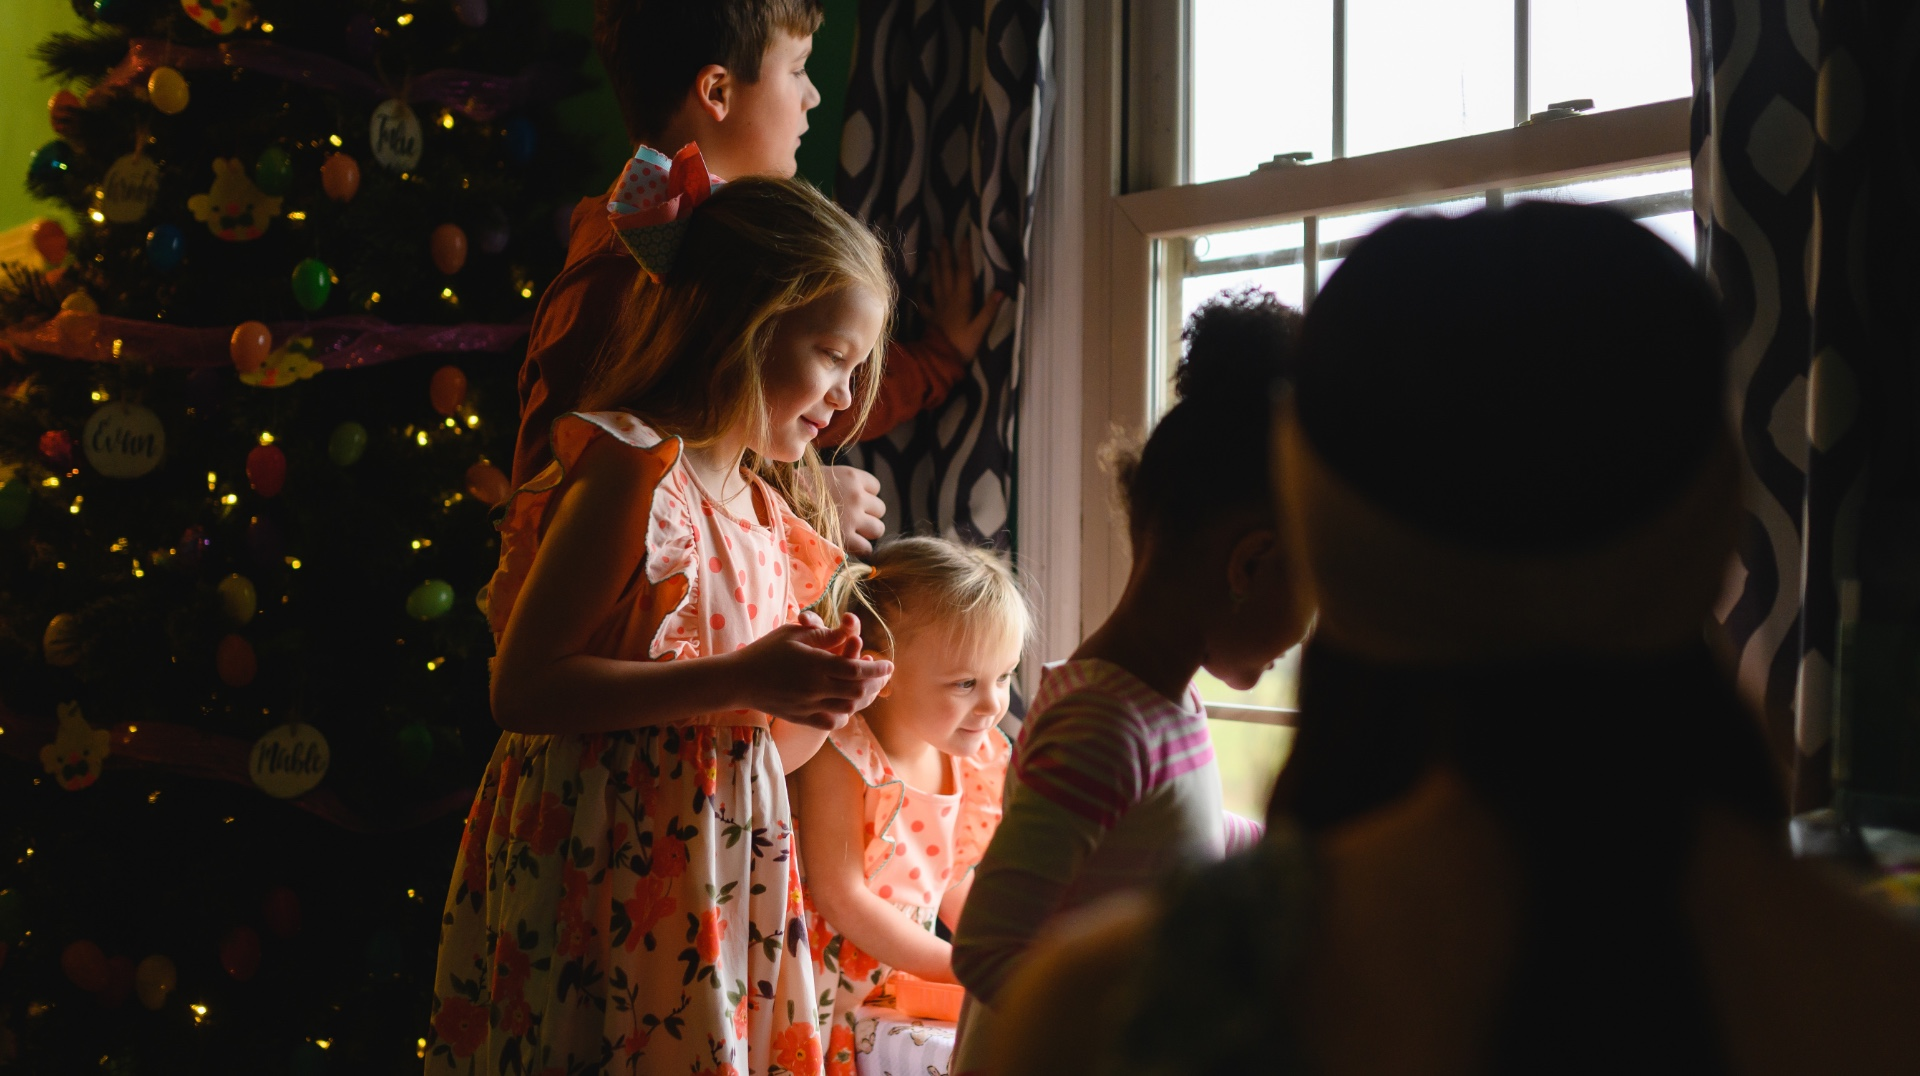 Standing next to the Christmas tree inside the house, Julie, her siblings, Jennifer and her daughter stare out the window.